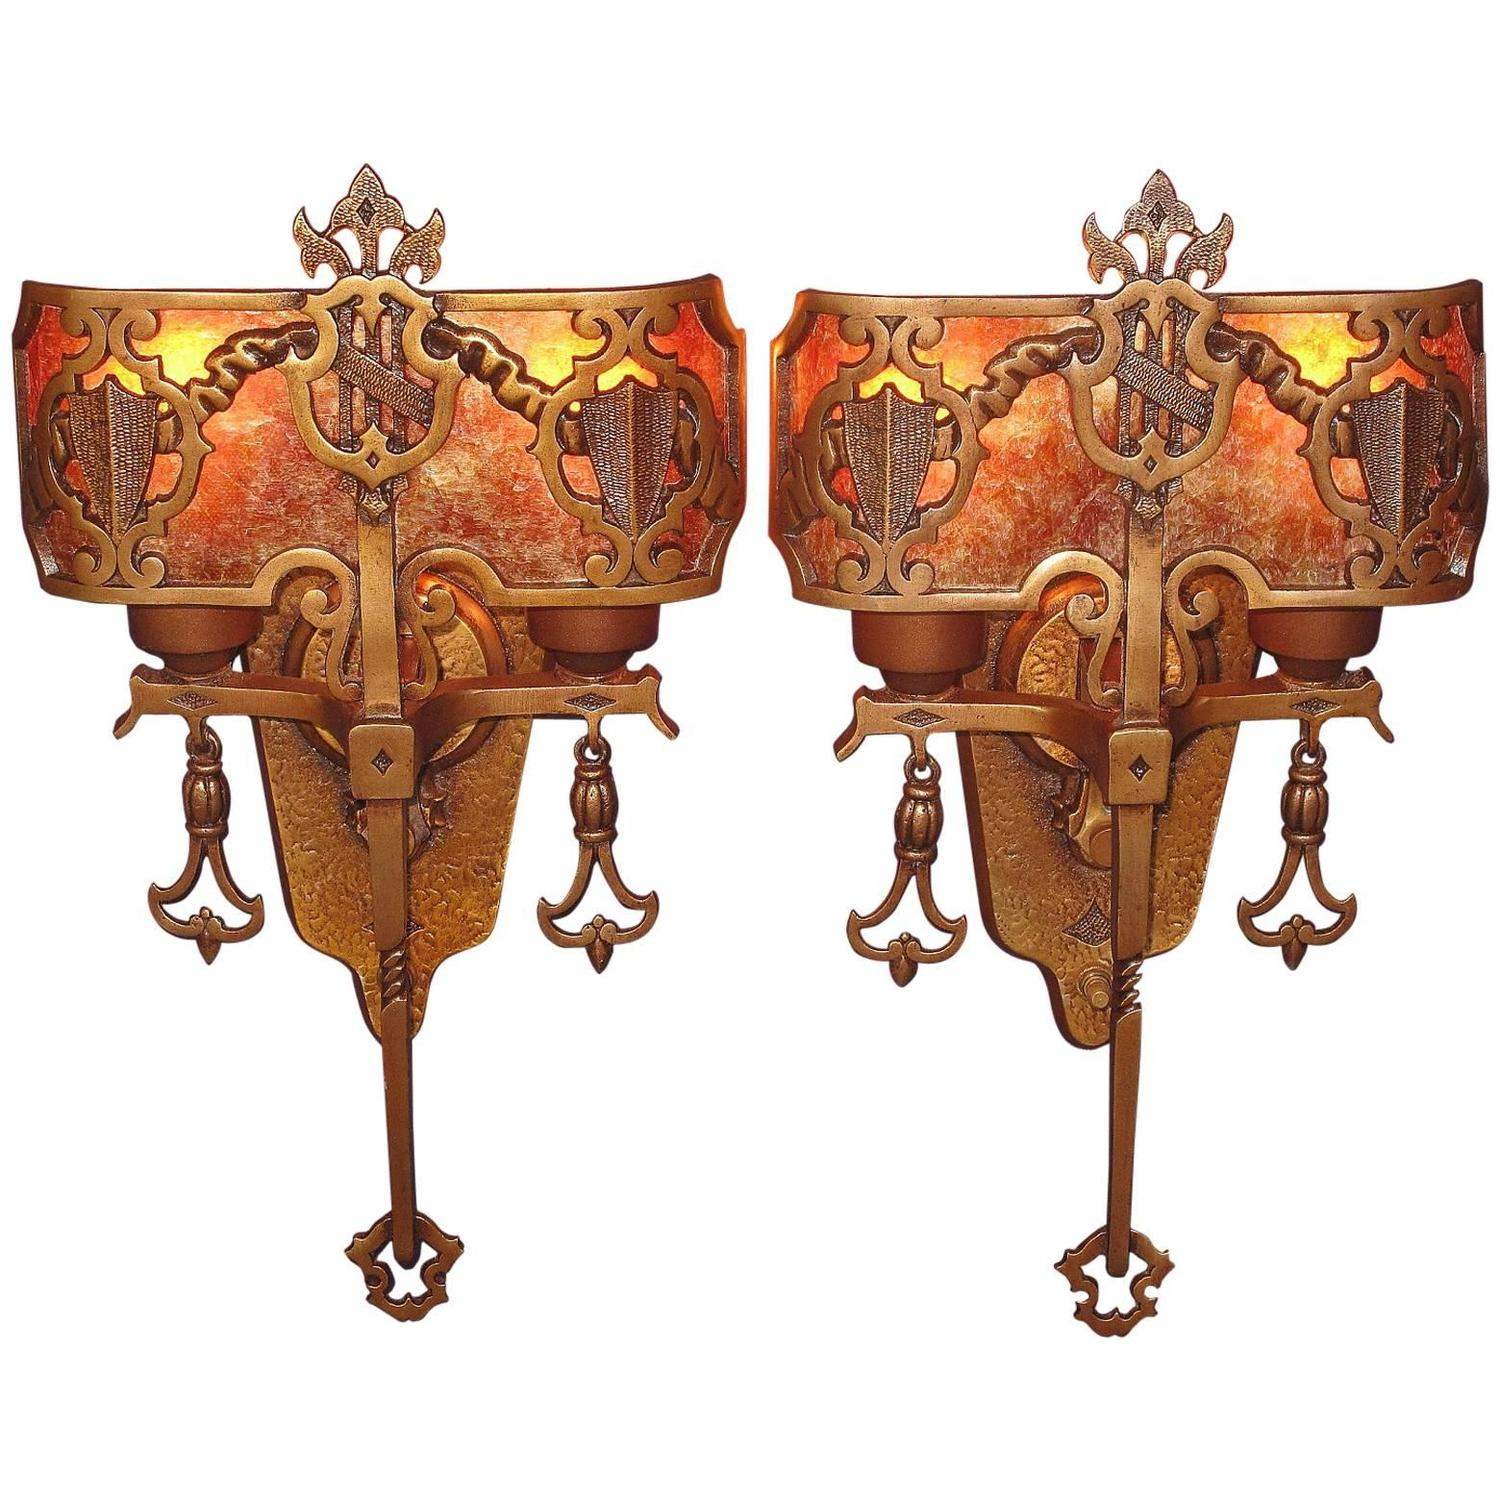 1920s tudor gothic sconces with new mica shade ada at 1stdibs amipublicfo Choice Image